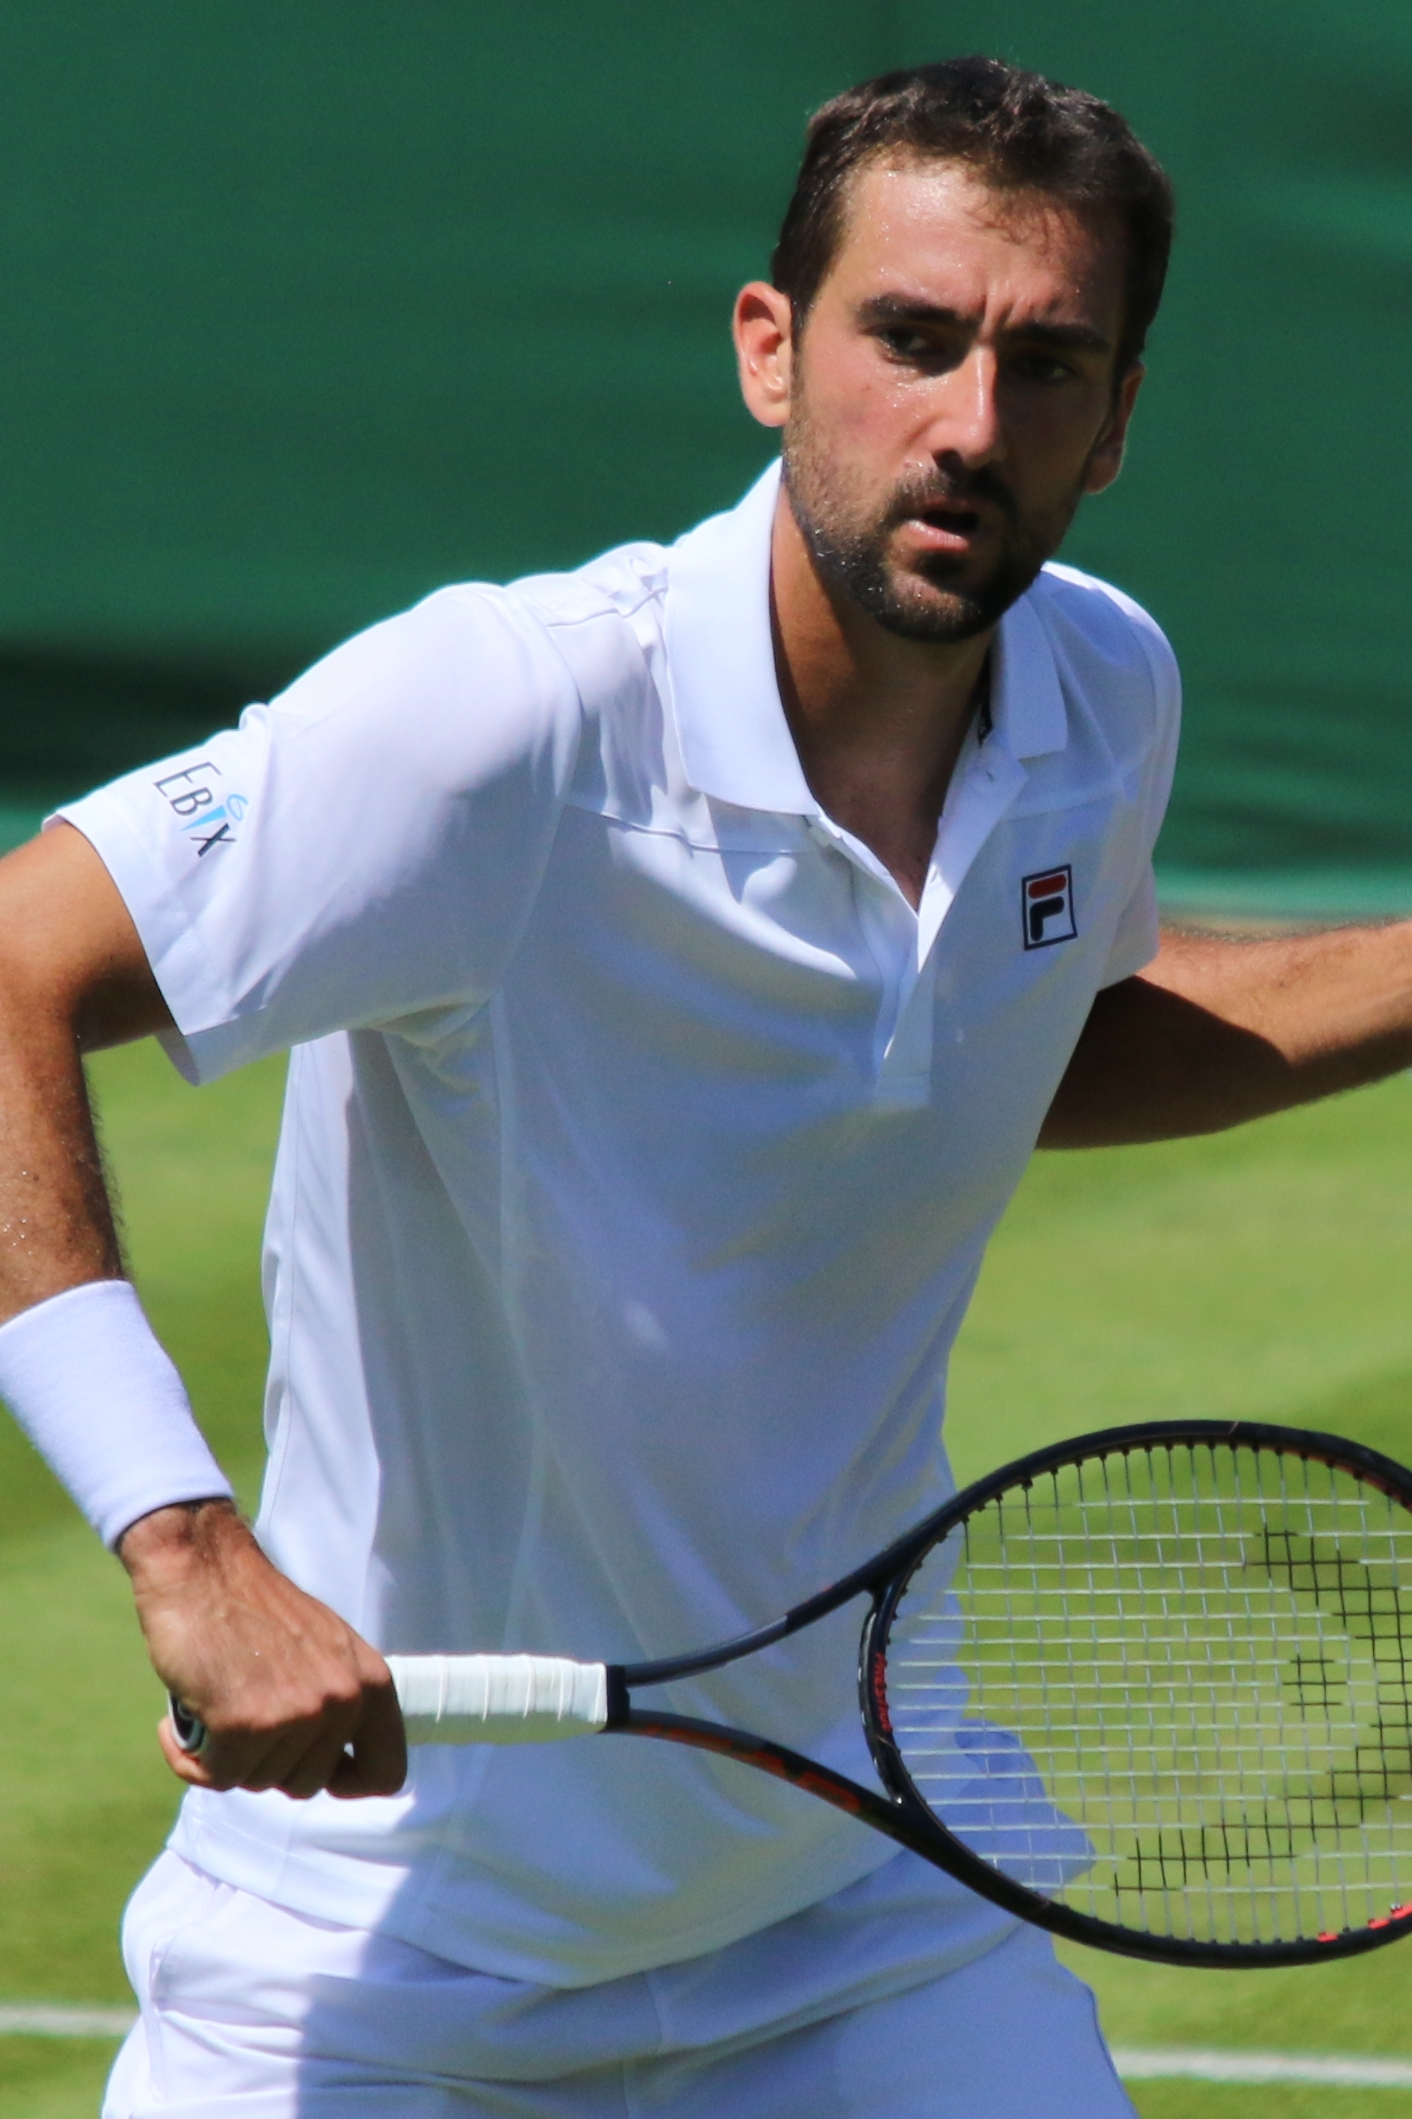 The 31-year old son of father Zdenko Čilić and mother Koviljka Čilić Marin Cilic in 2020 photo. Marin Cilic earned a 4.5 million dollar salary - leaving the net worth at 16.3 million in 2020